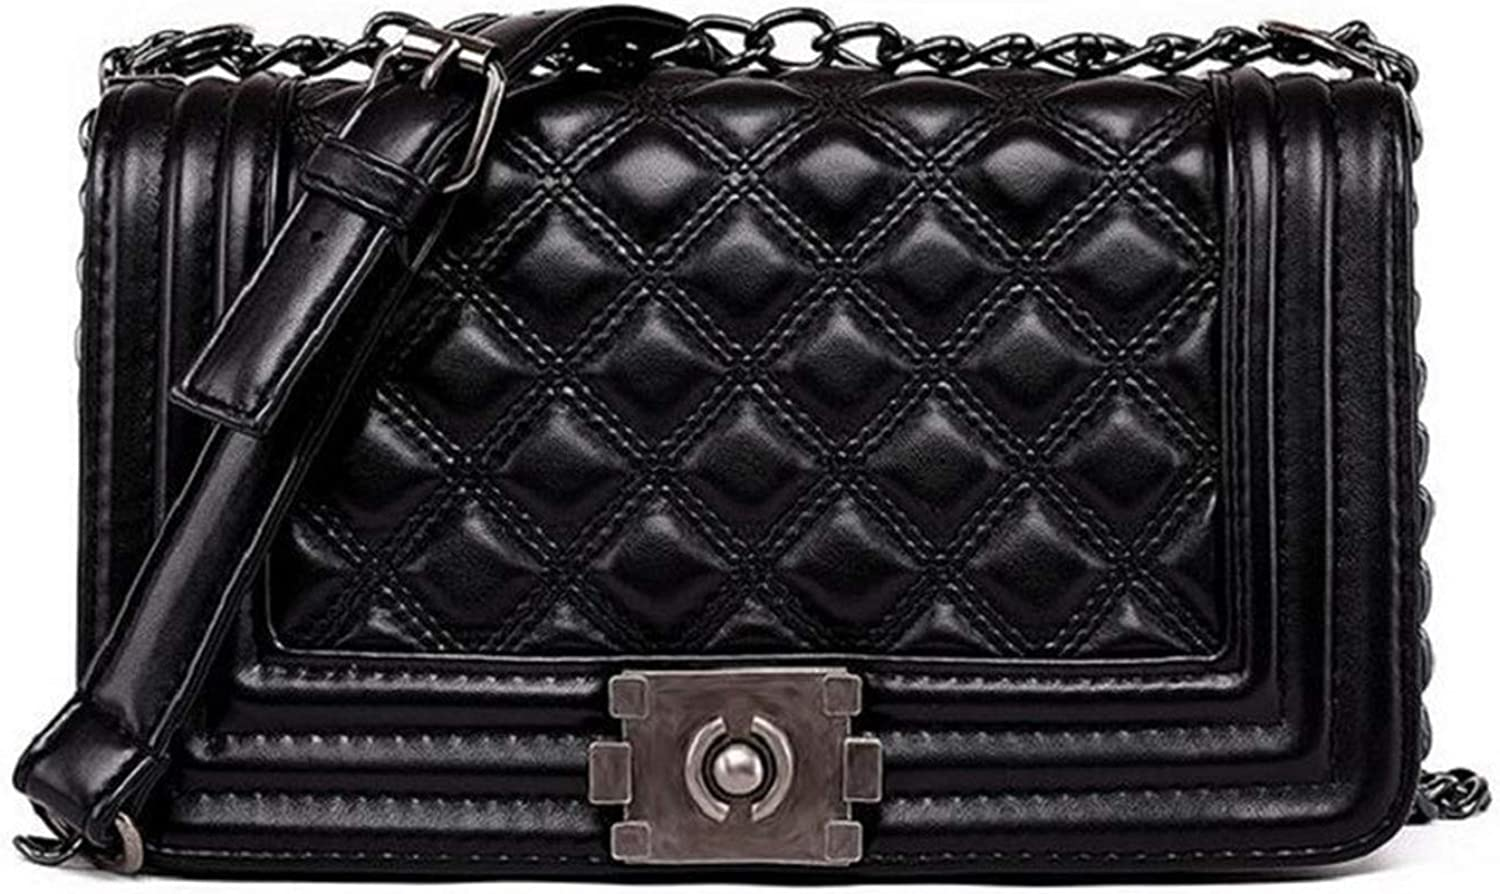 Diamond Lattice Women Bag...